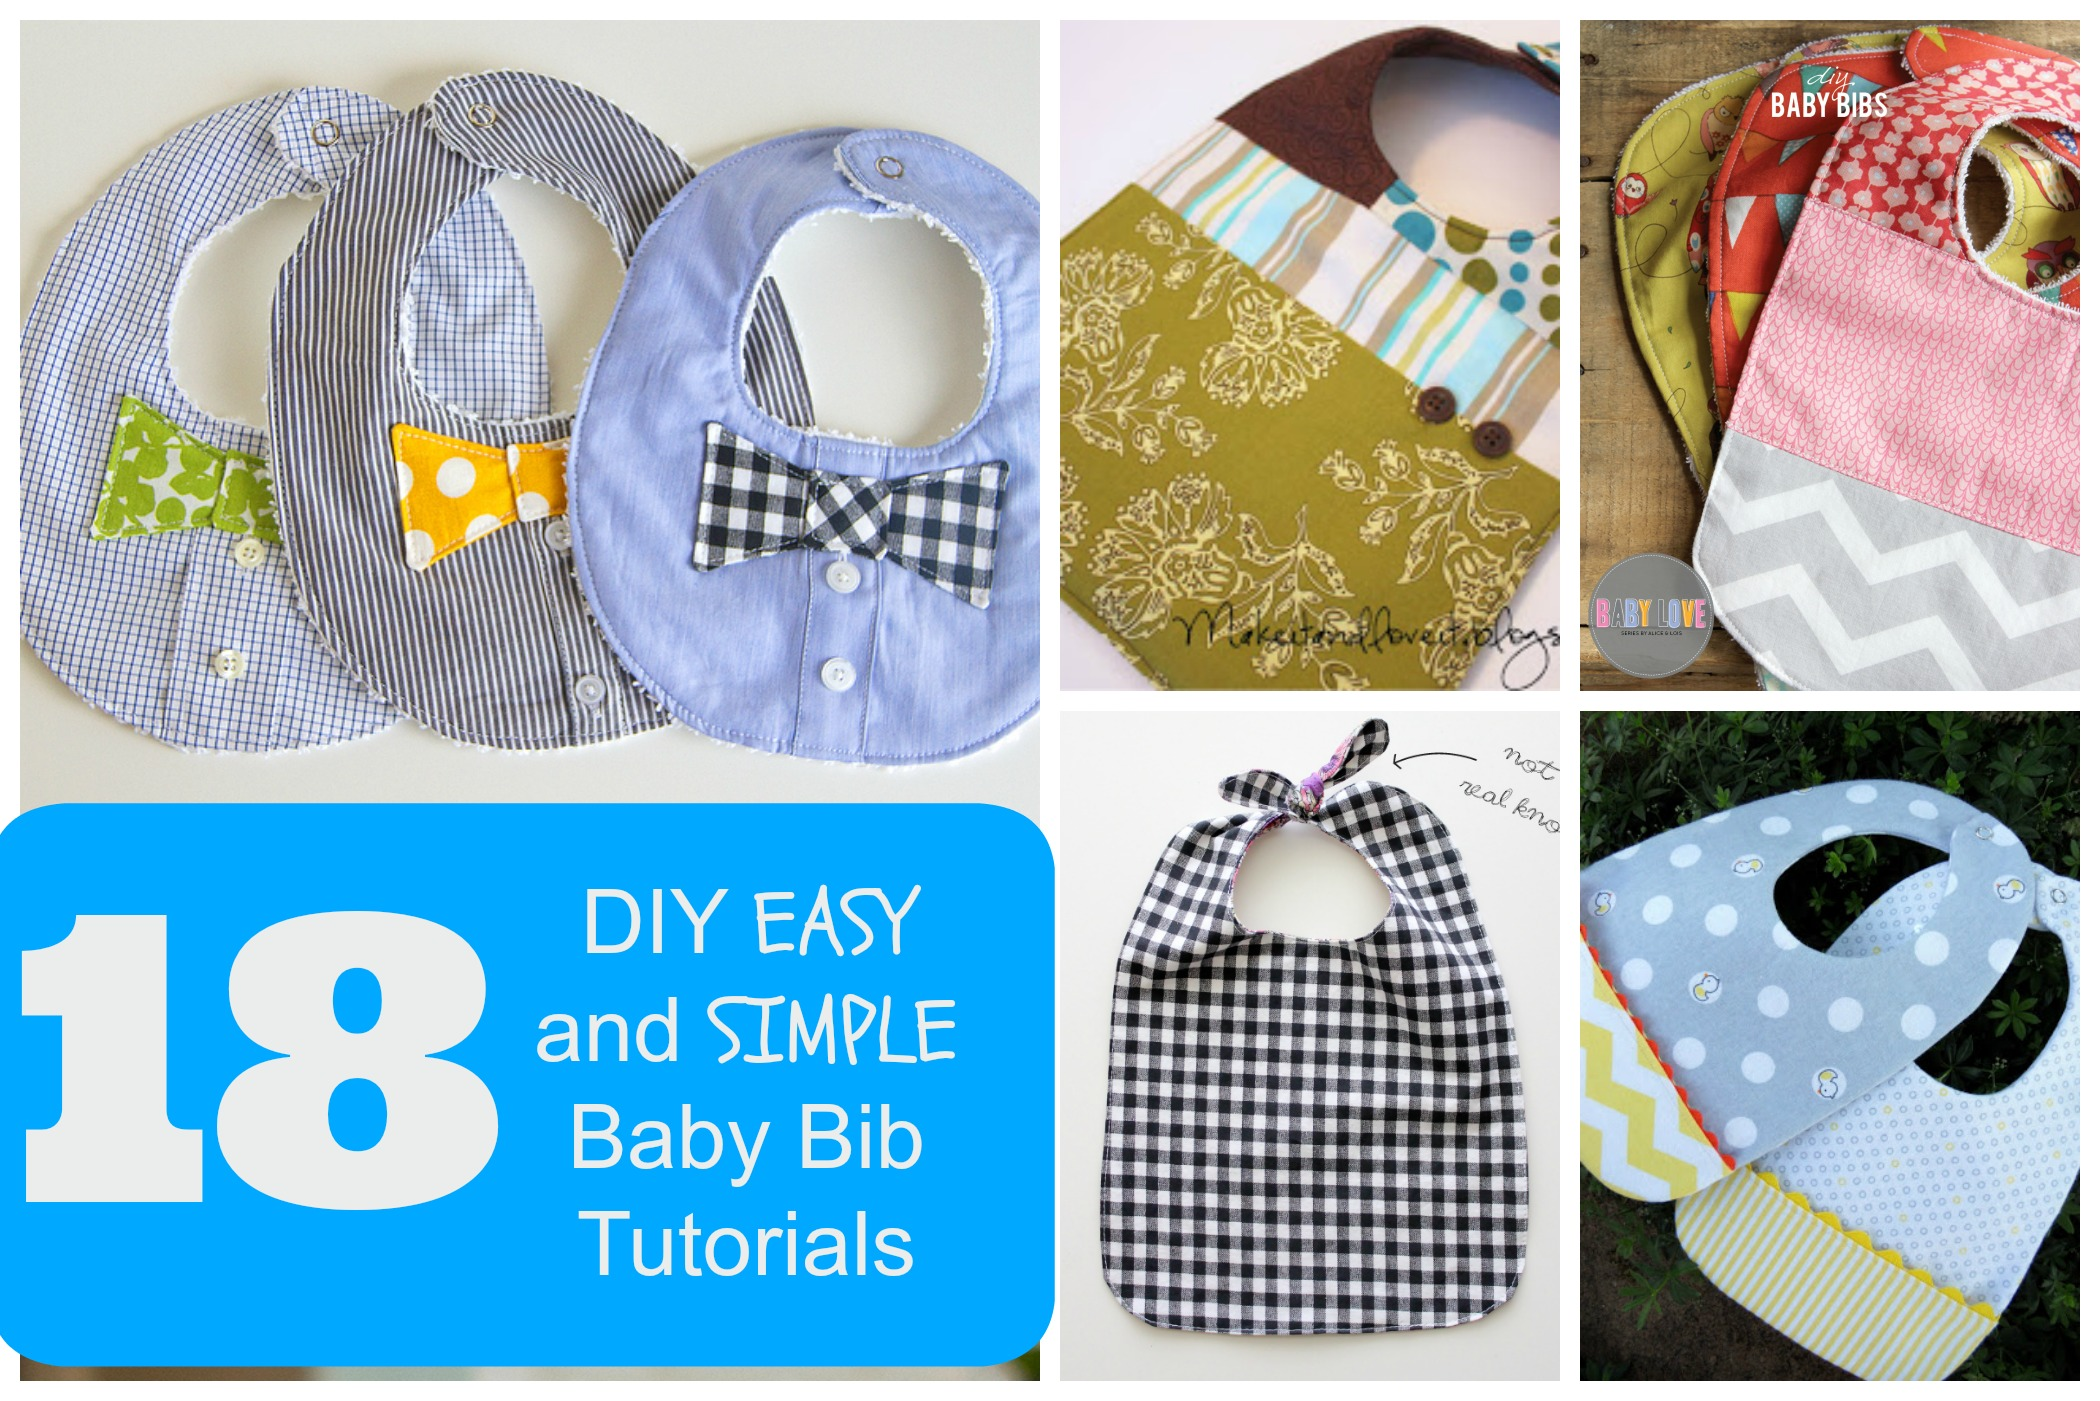 18 DIY EASY and SIMPLE Baby Bib Tutorials